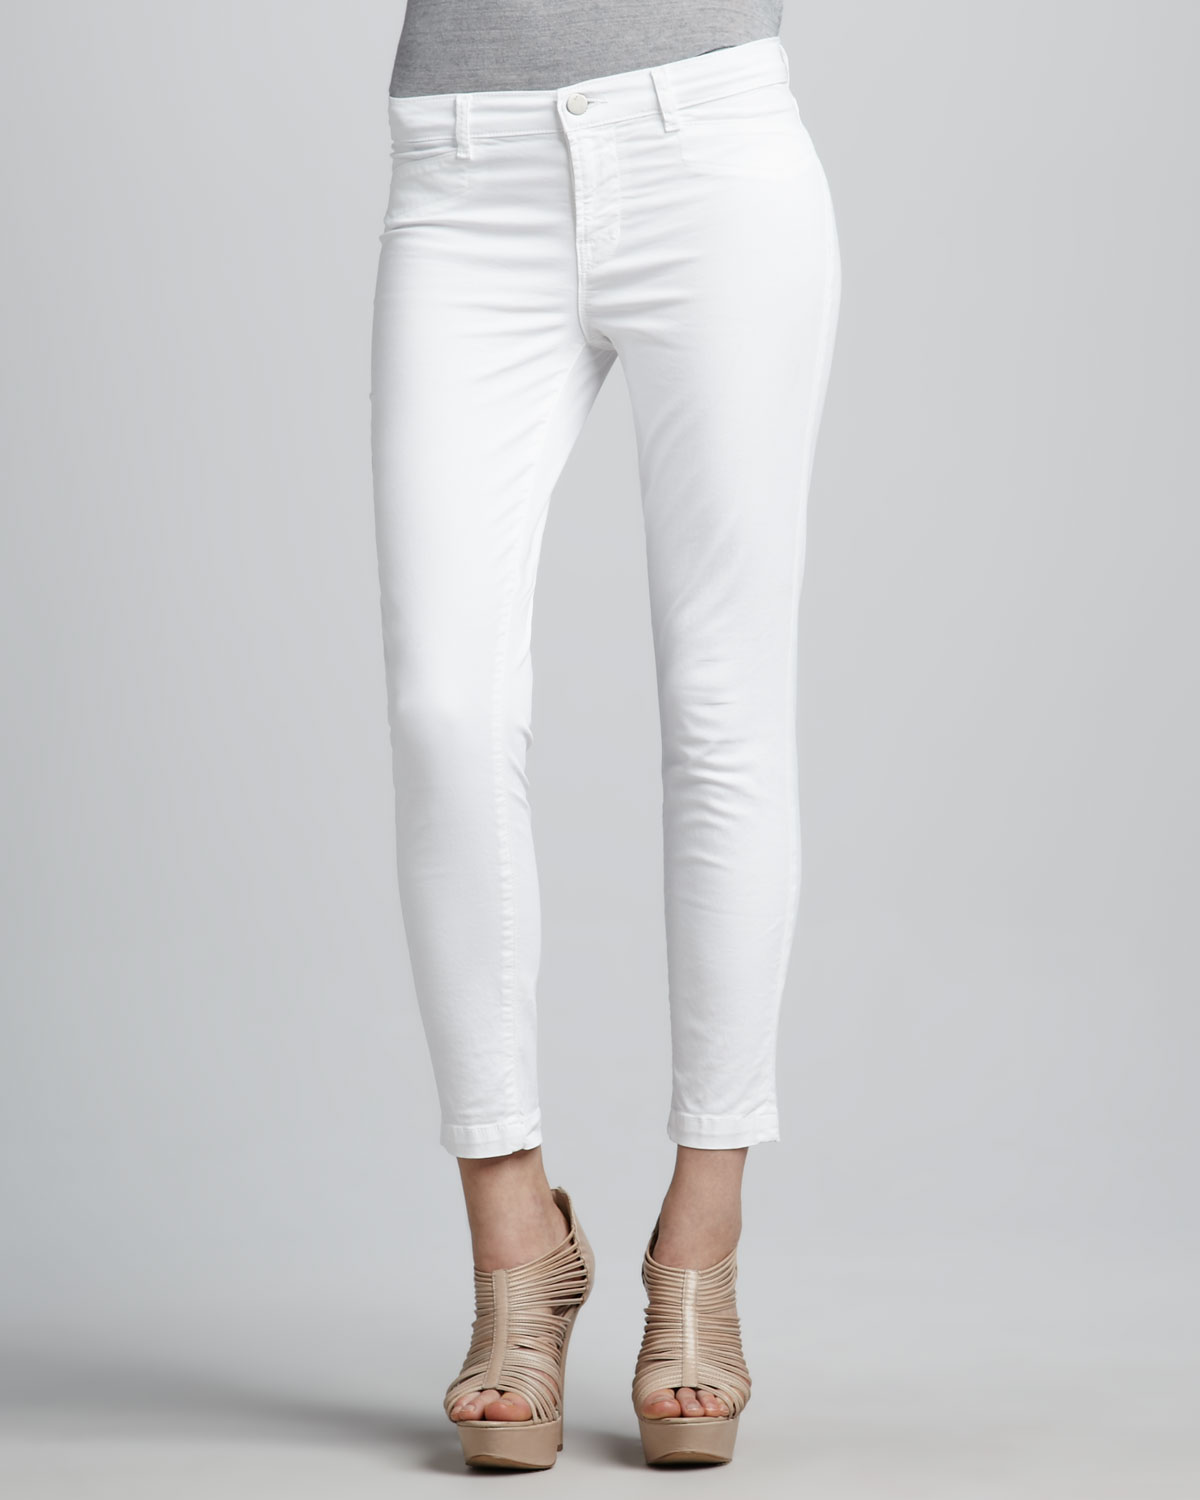 J brand Harper Capri Pants in White | Lyst